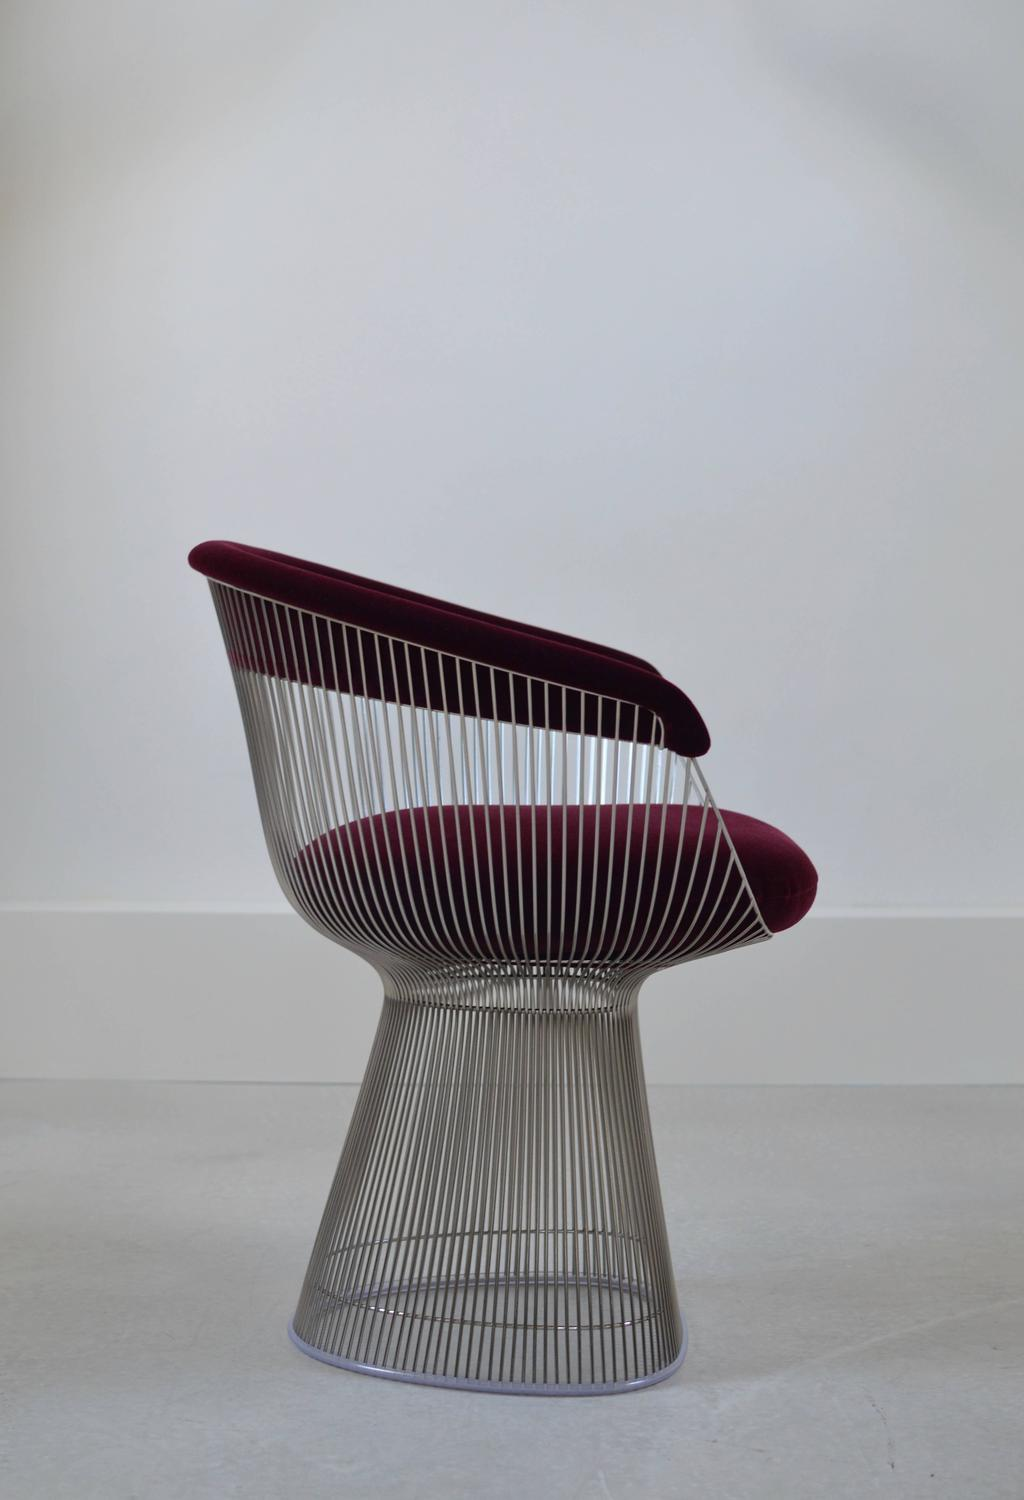 mid century modern wire chair exercise ball office target burgundy velvet warren platner for knoll sale at 1stdibs